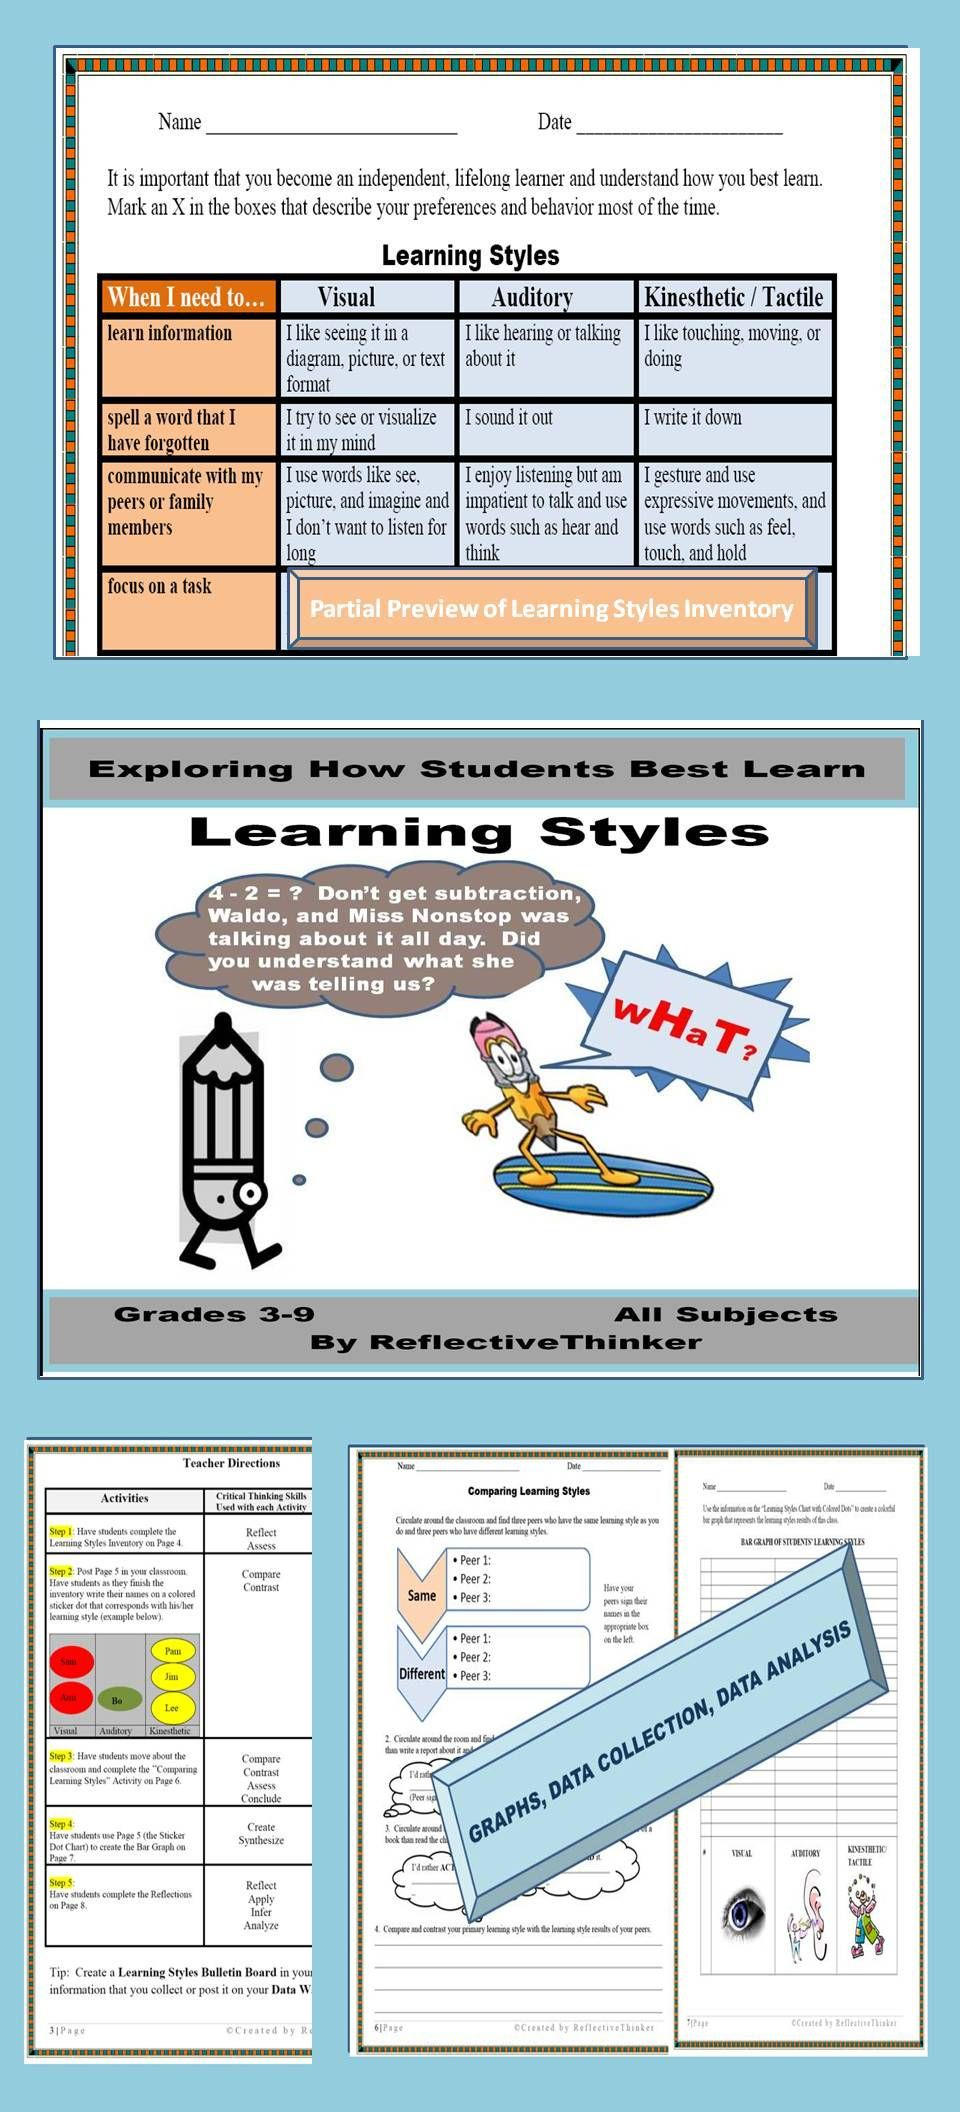 Applied math in the form of graphs/charts/data collection and data analysis skills in an authentic context! Have students complete the learning styles inventory and activities to discover their uniquenesses and better understand that they think and respond differently than others. Authentic learning as well as test prep.